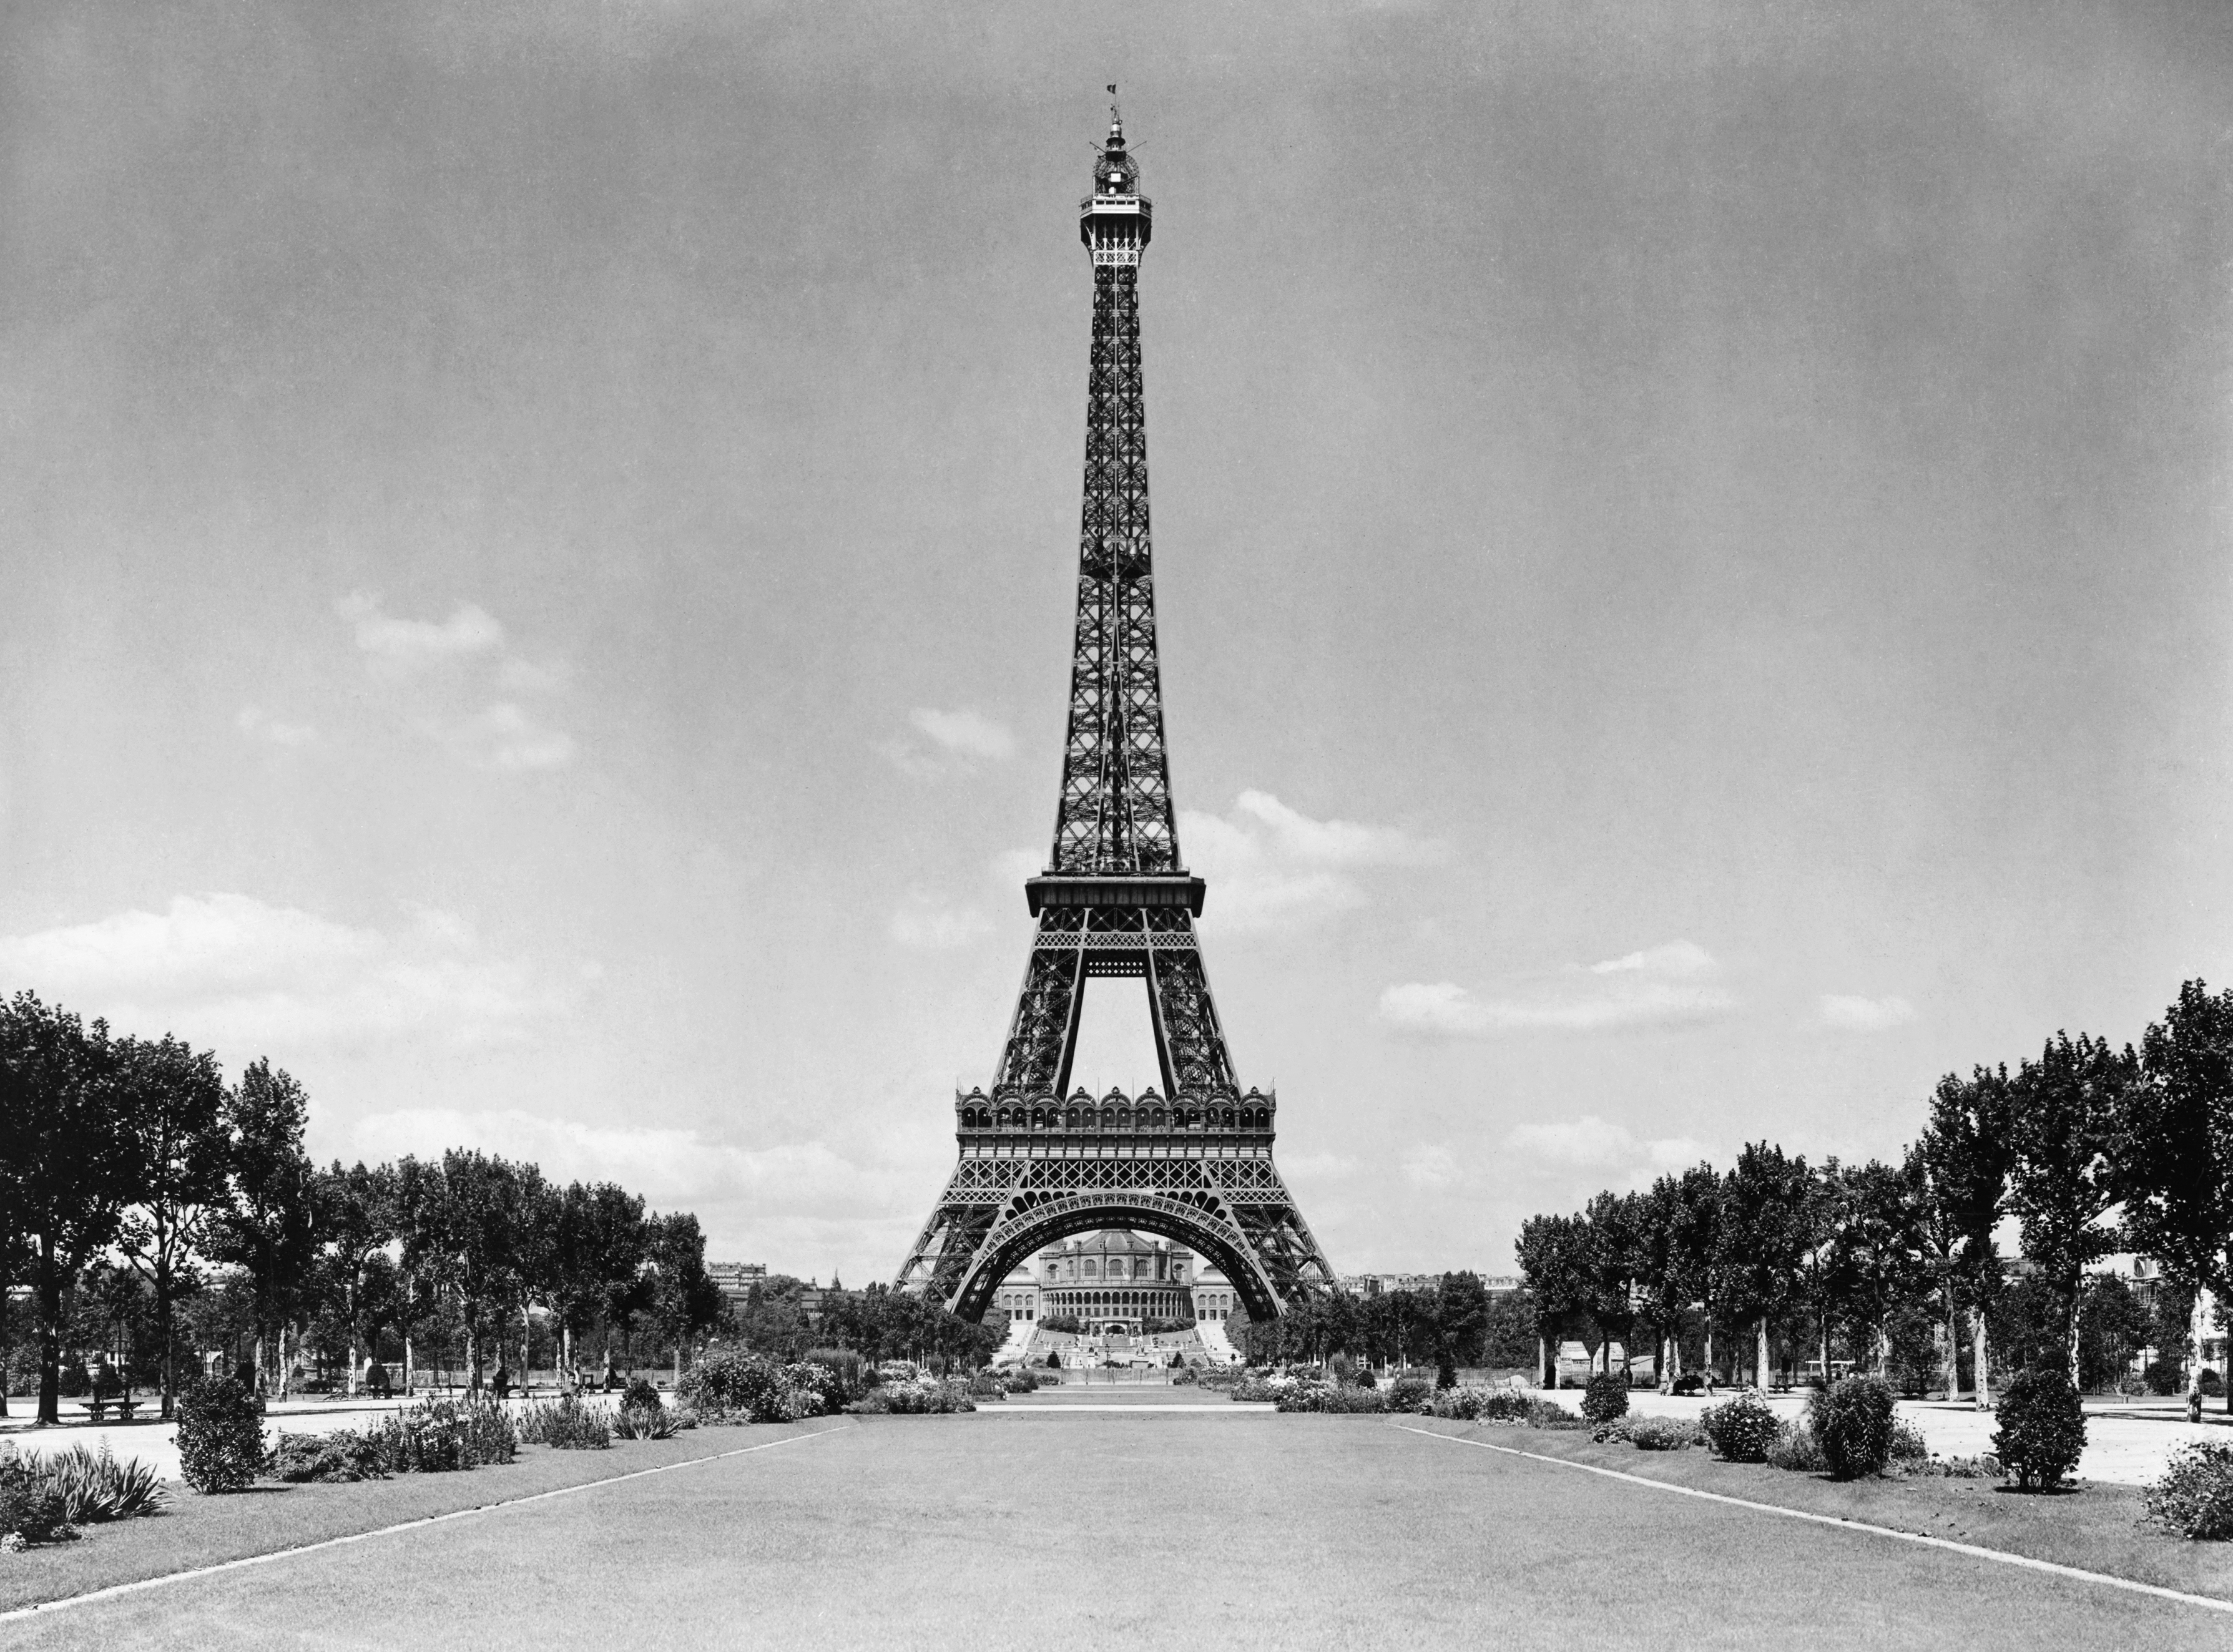 FileEiffel Tower And Park Paris France Ca 1909